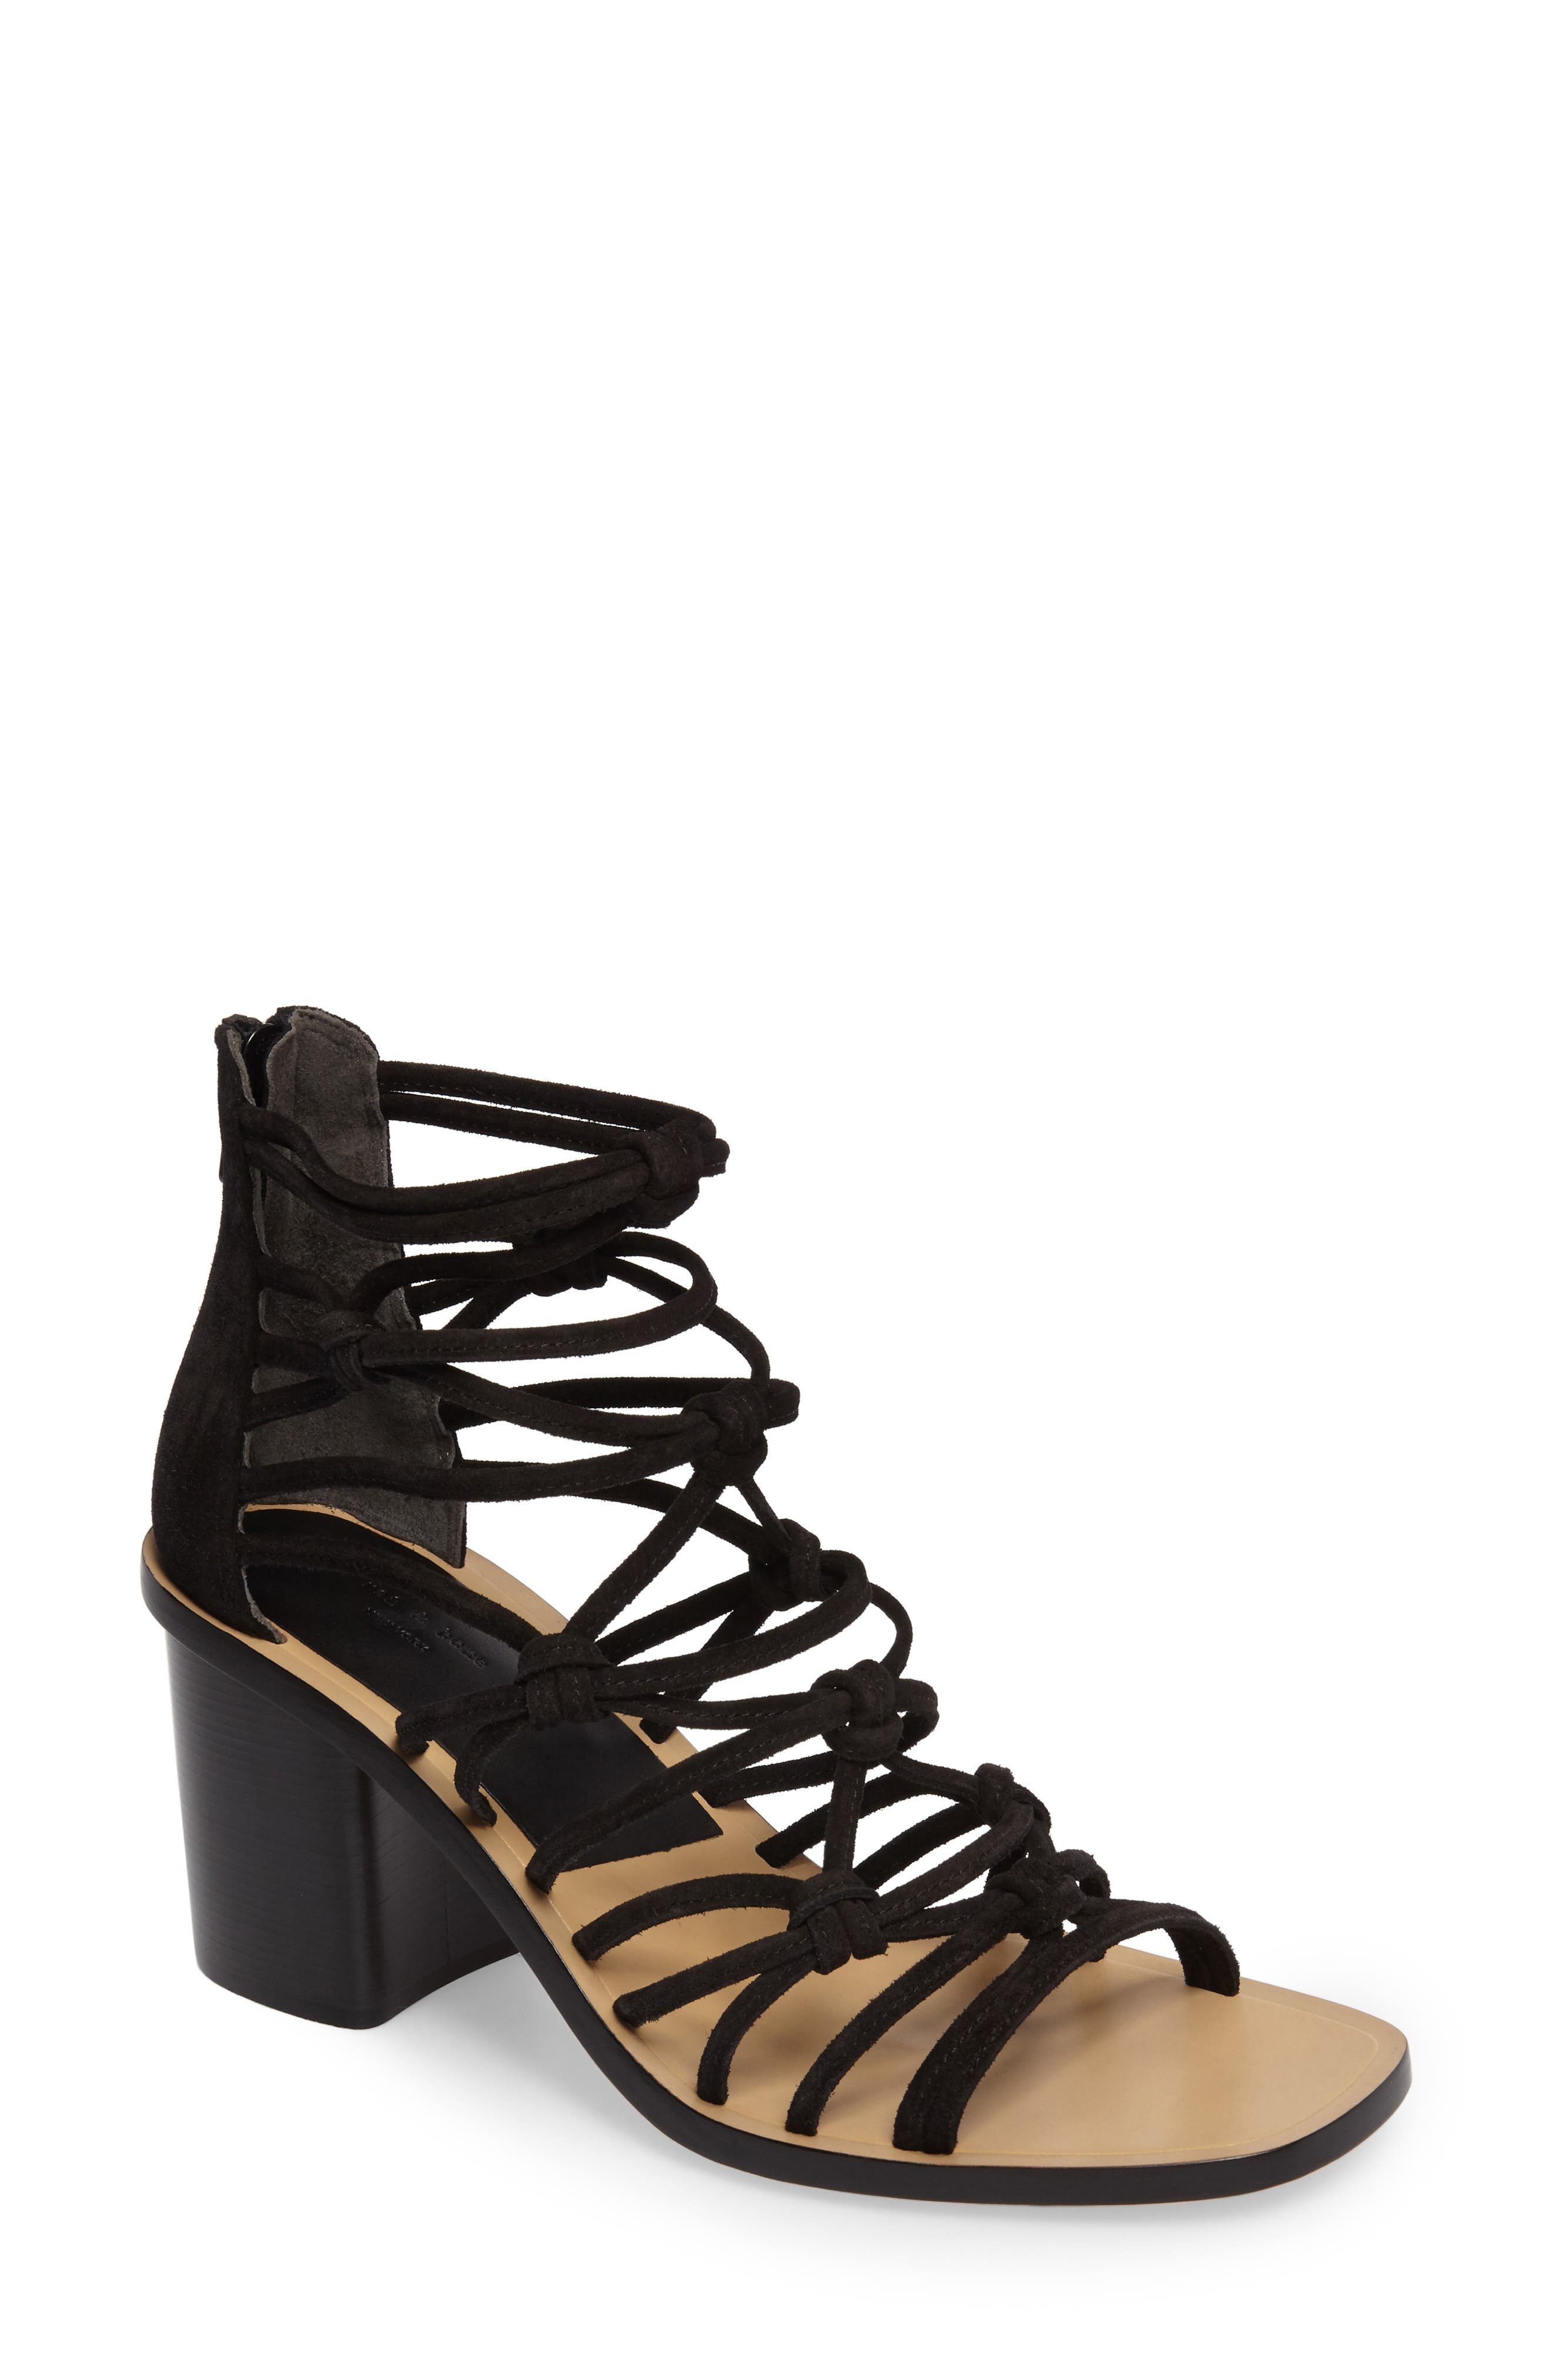 Camille Knotted Strappy Sandal,                             Main thumbnail 1, color,                             Black Suede